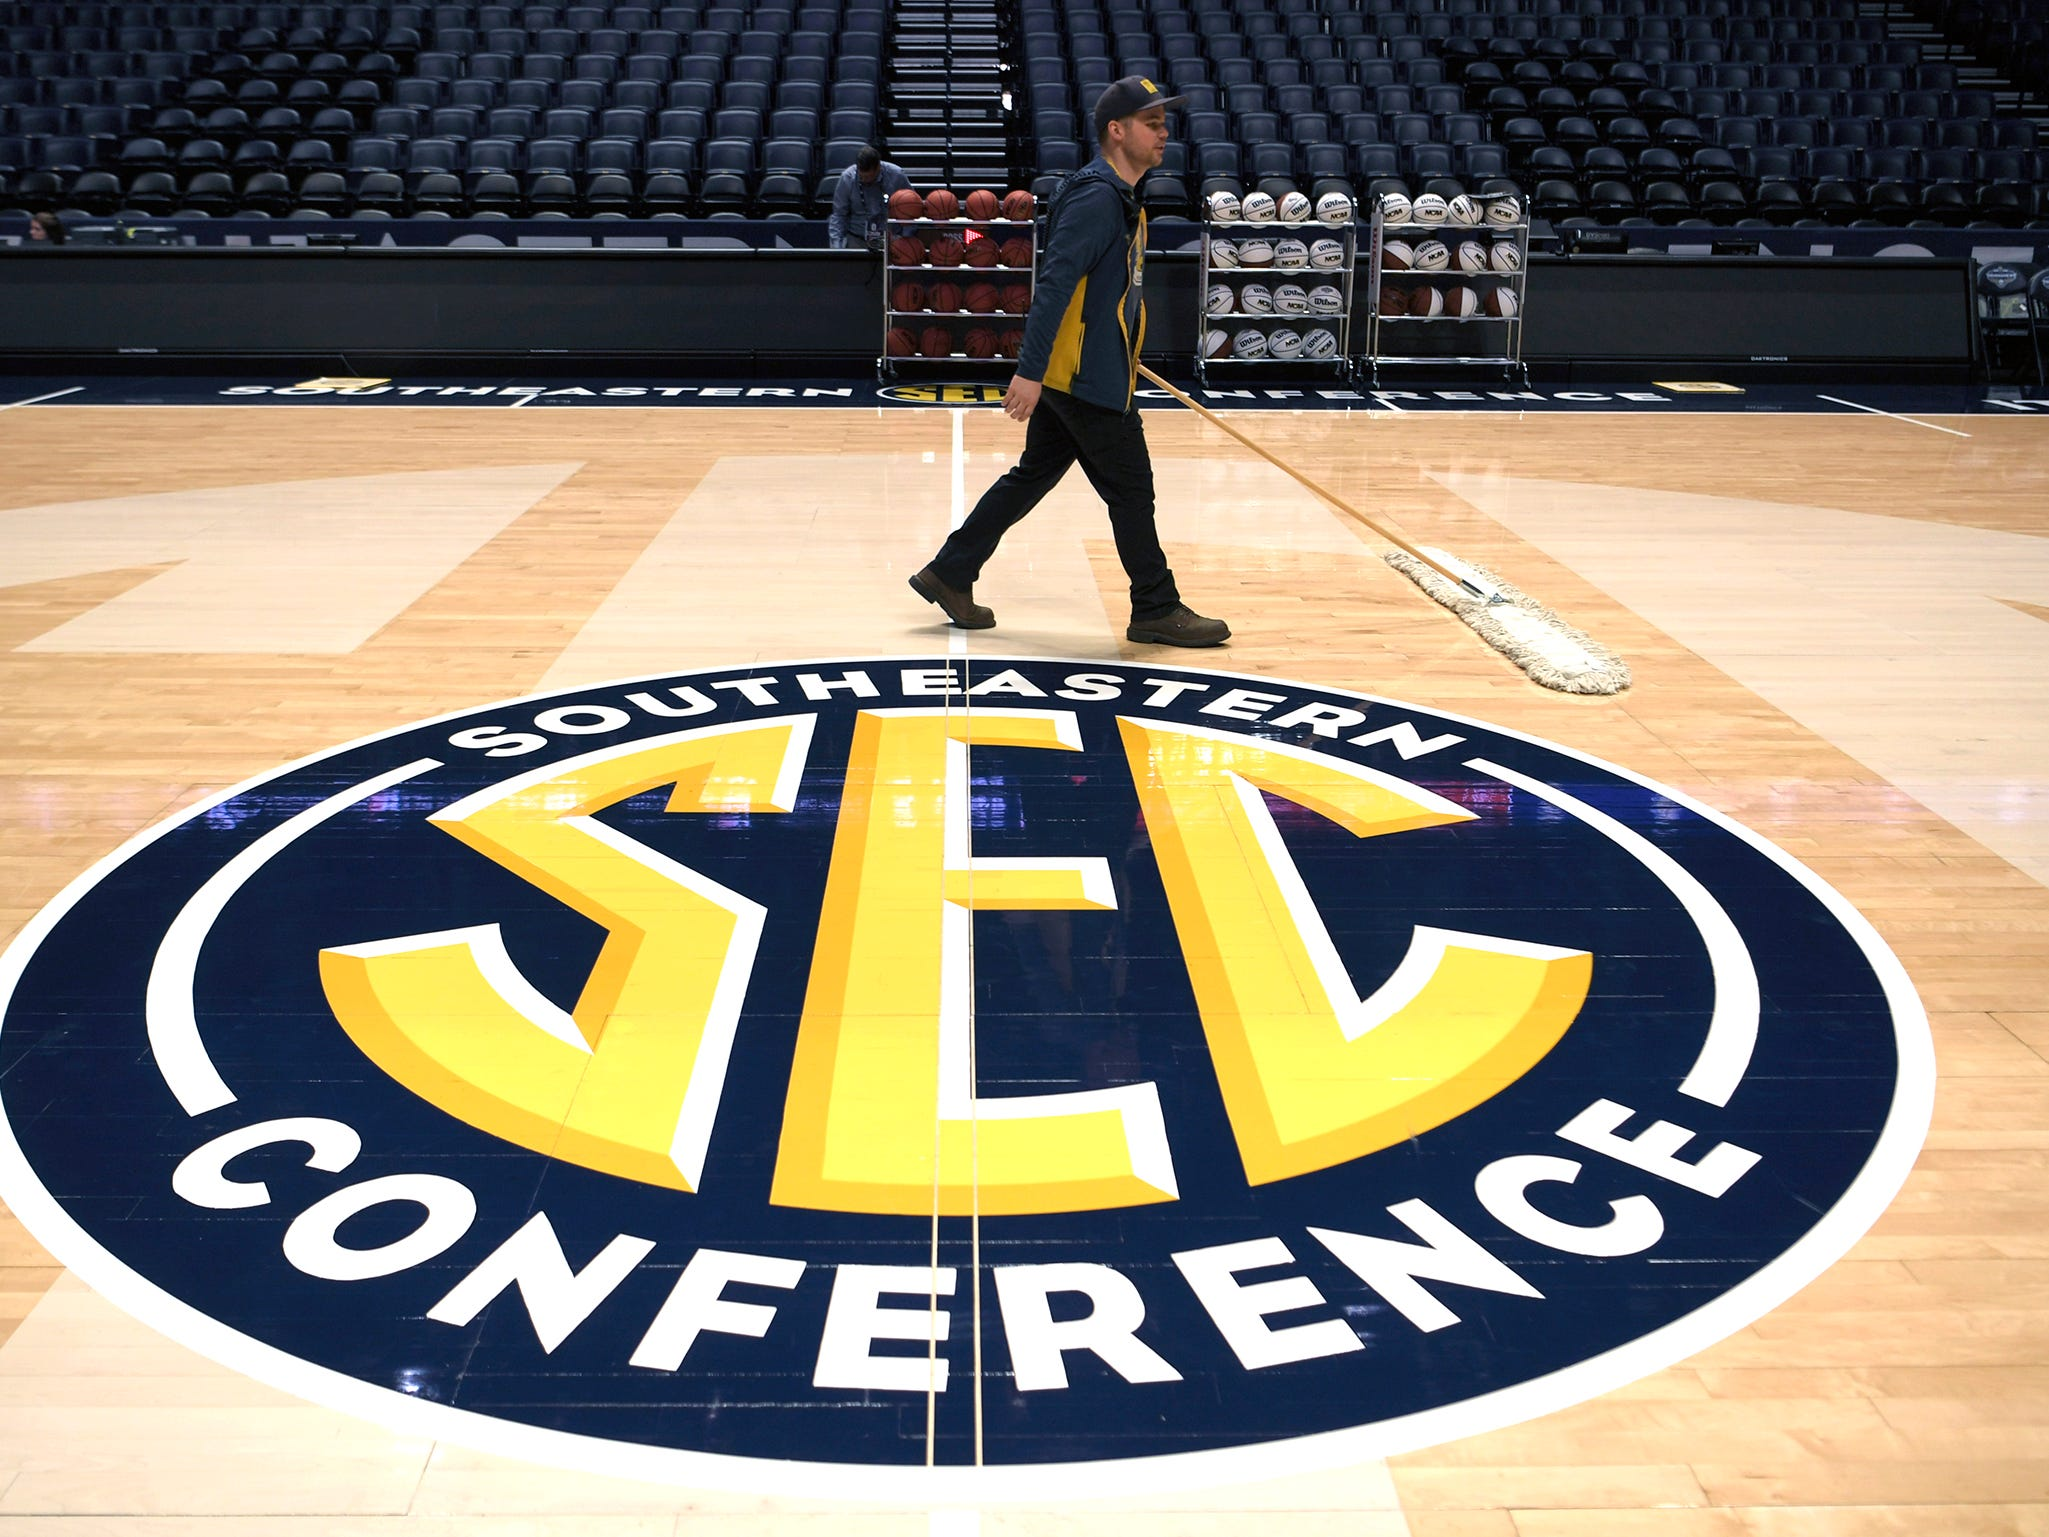 Patrick Hatton sweeps the basketball court before team practice at the 2019 SEC Men's Basketball Tournament in Nashville on Wednesday, March 13, 2019.